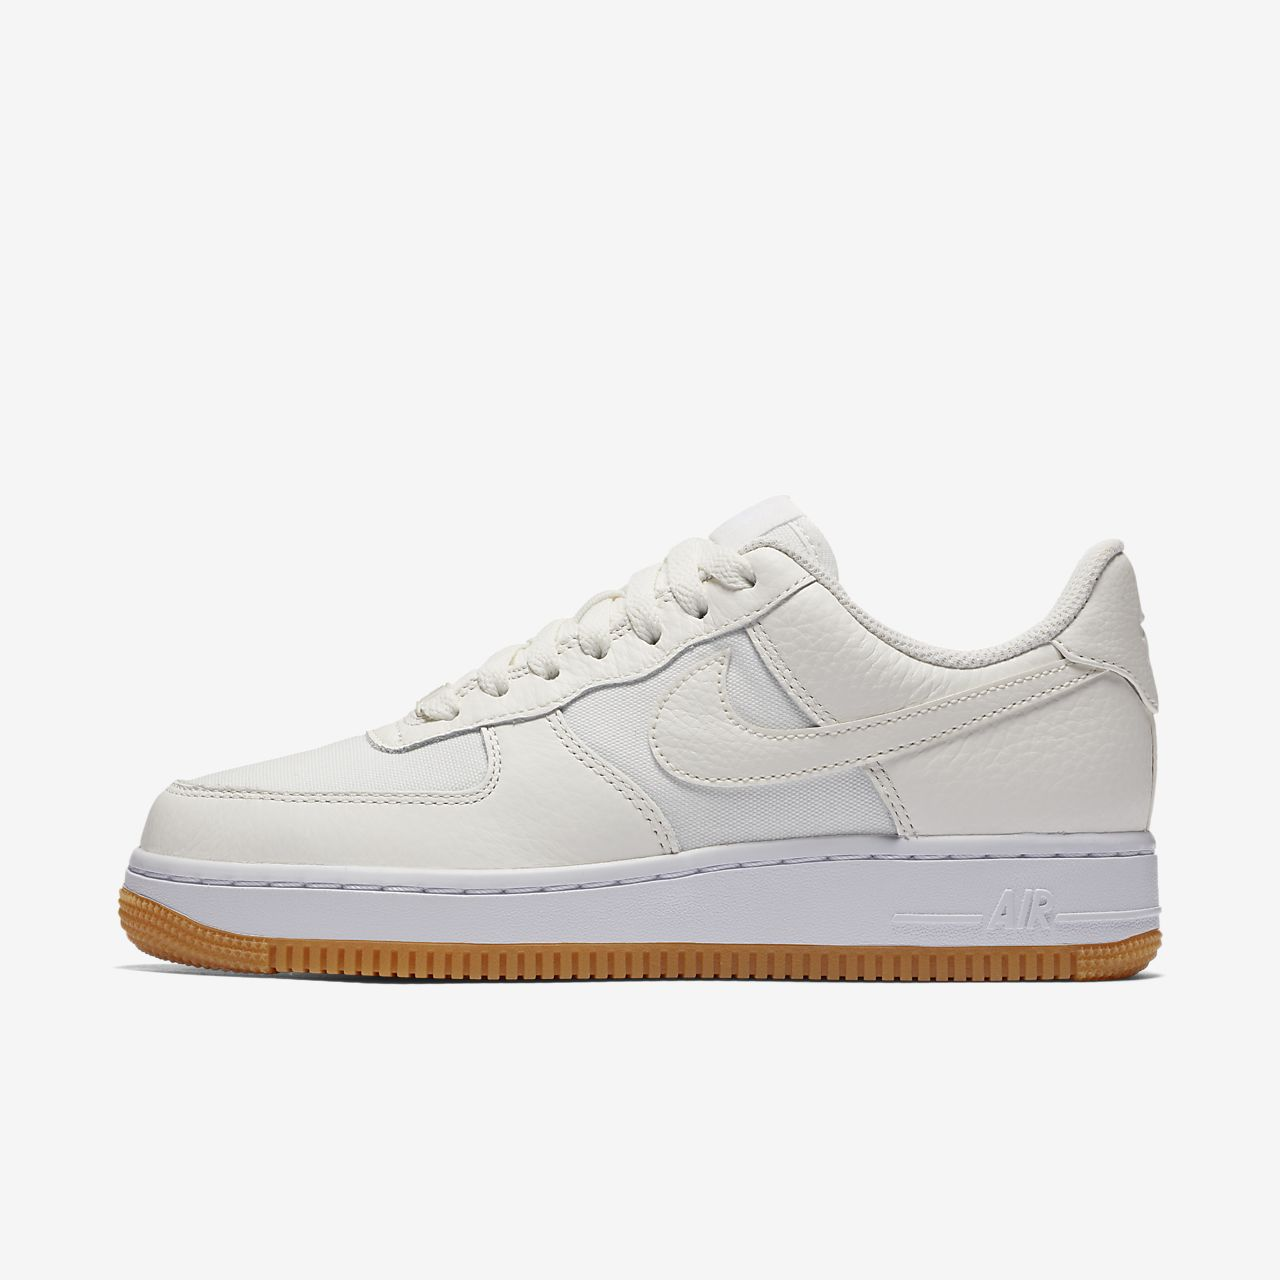 nike air force 1 low 07 nba white nz